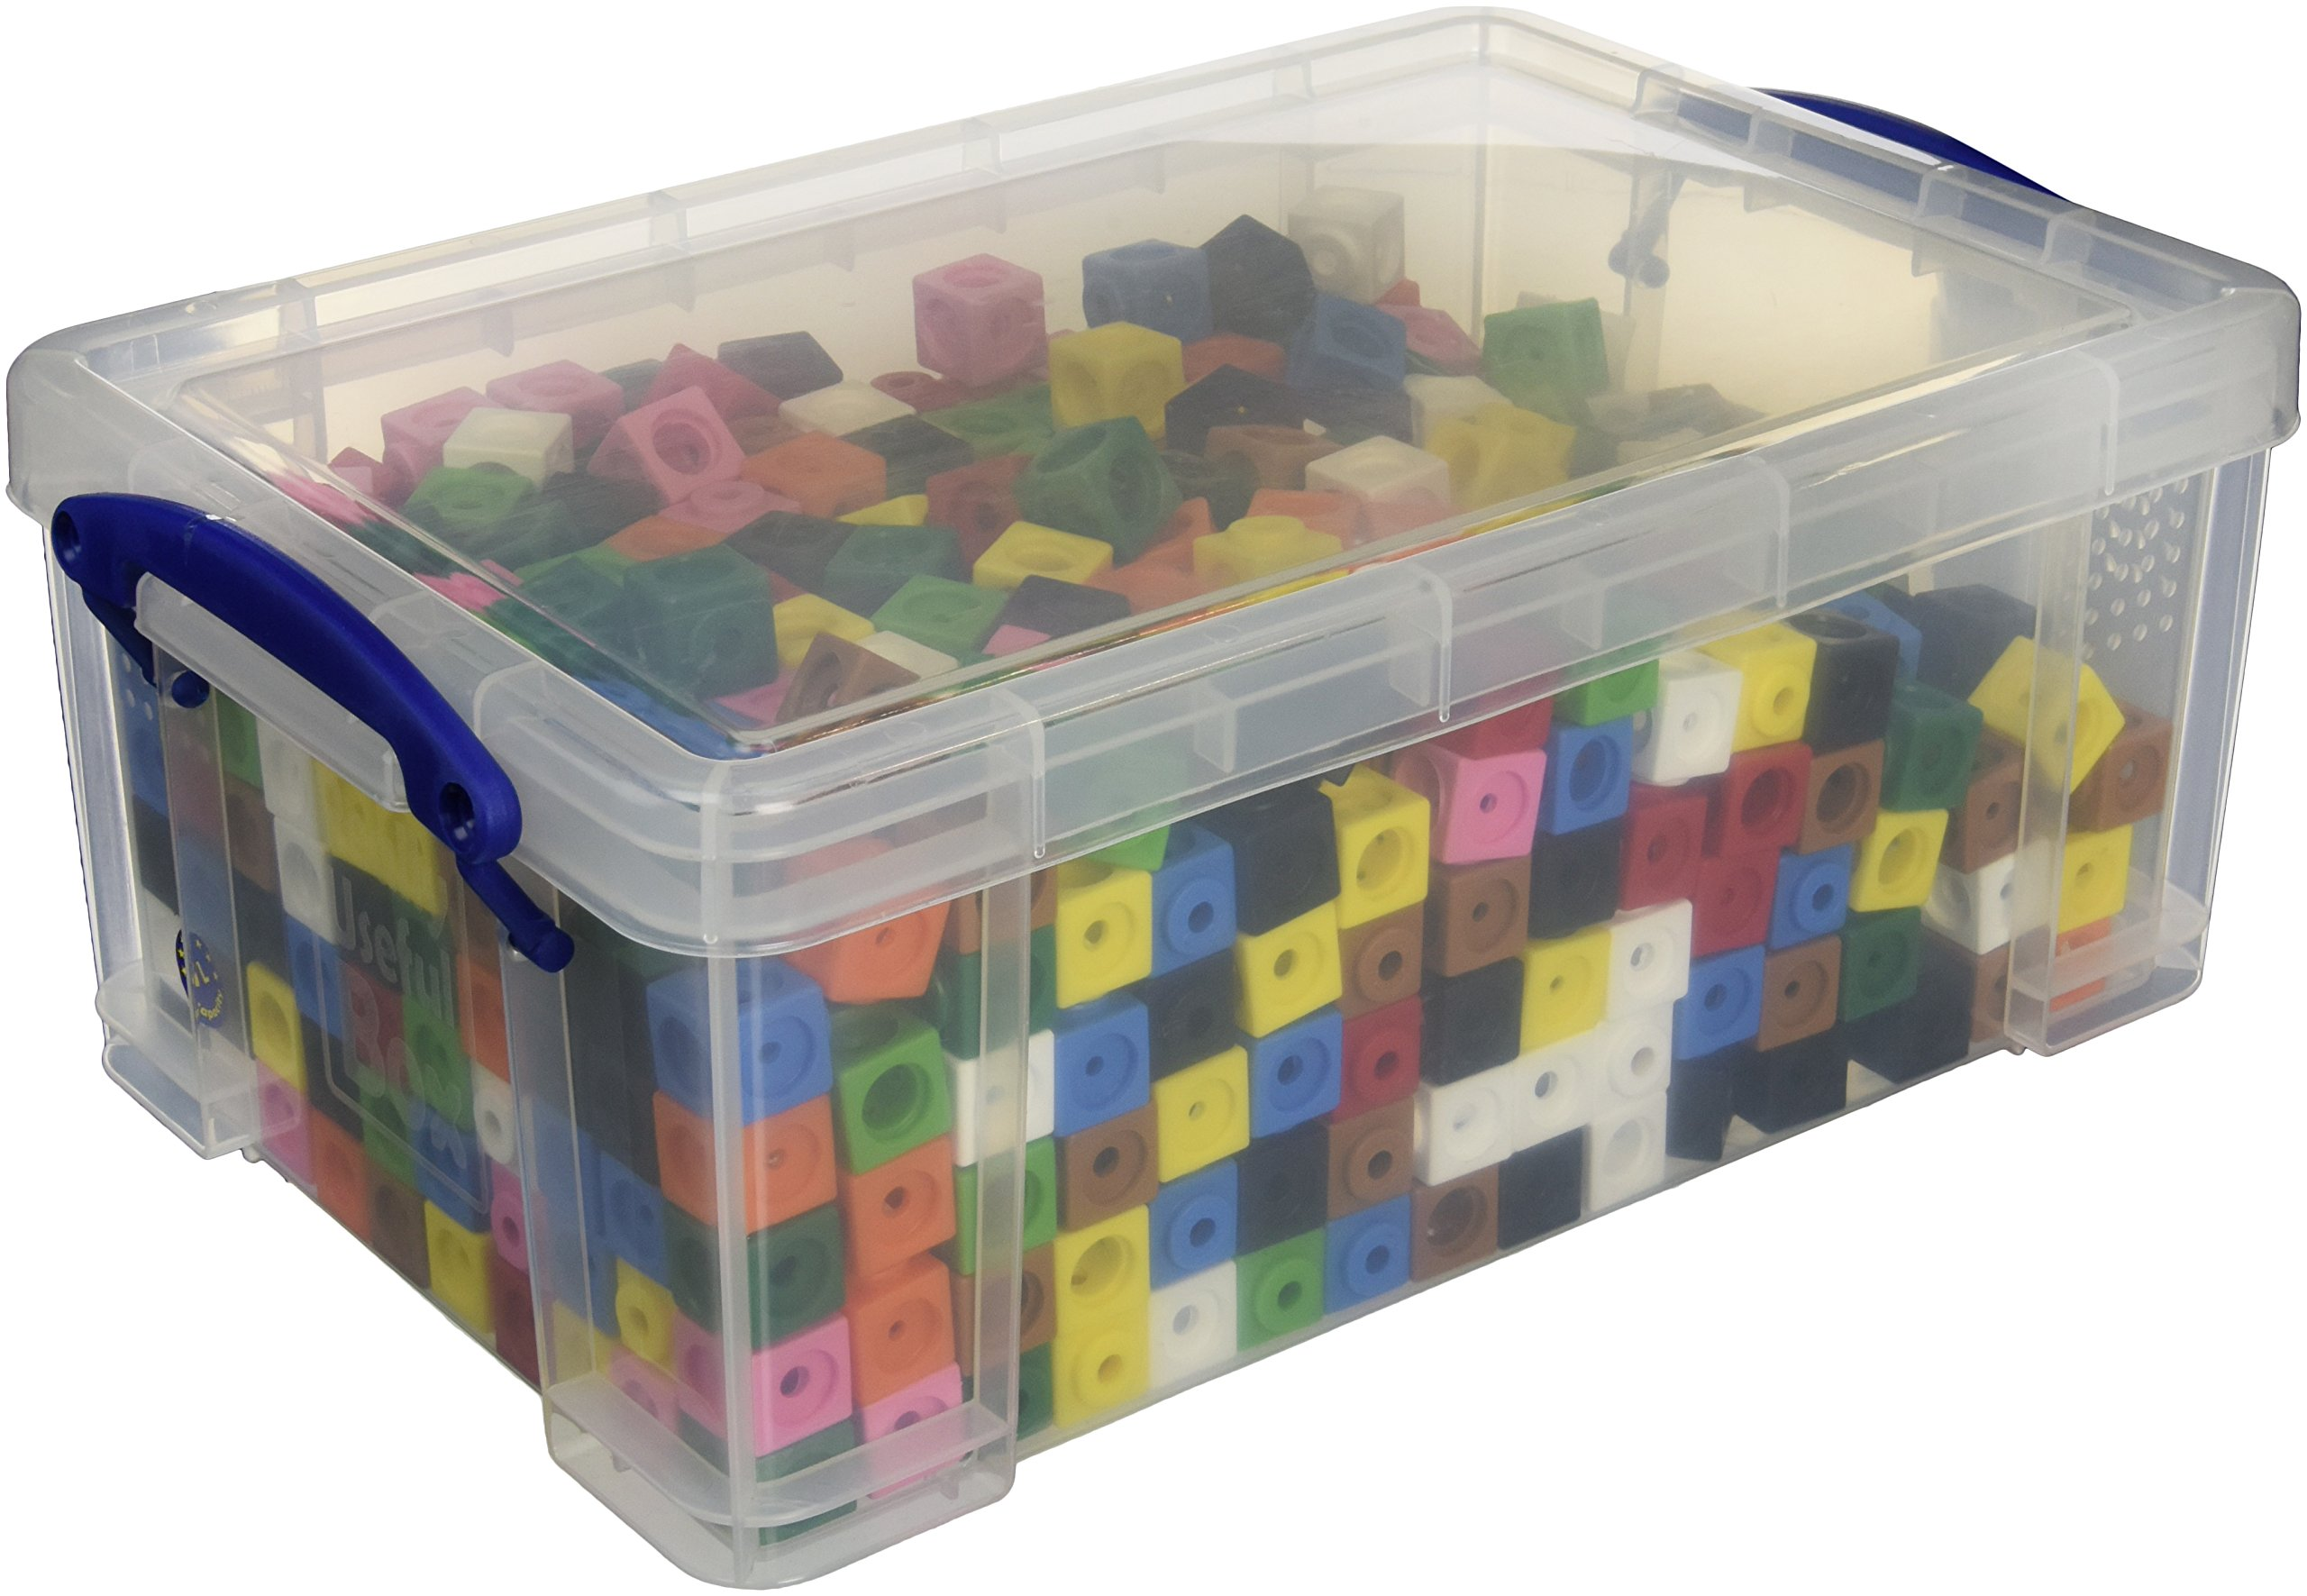 Dick System 200100800, Edge Length 2cm, 10Assorted Jigsaw Puzzle